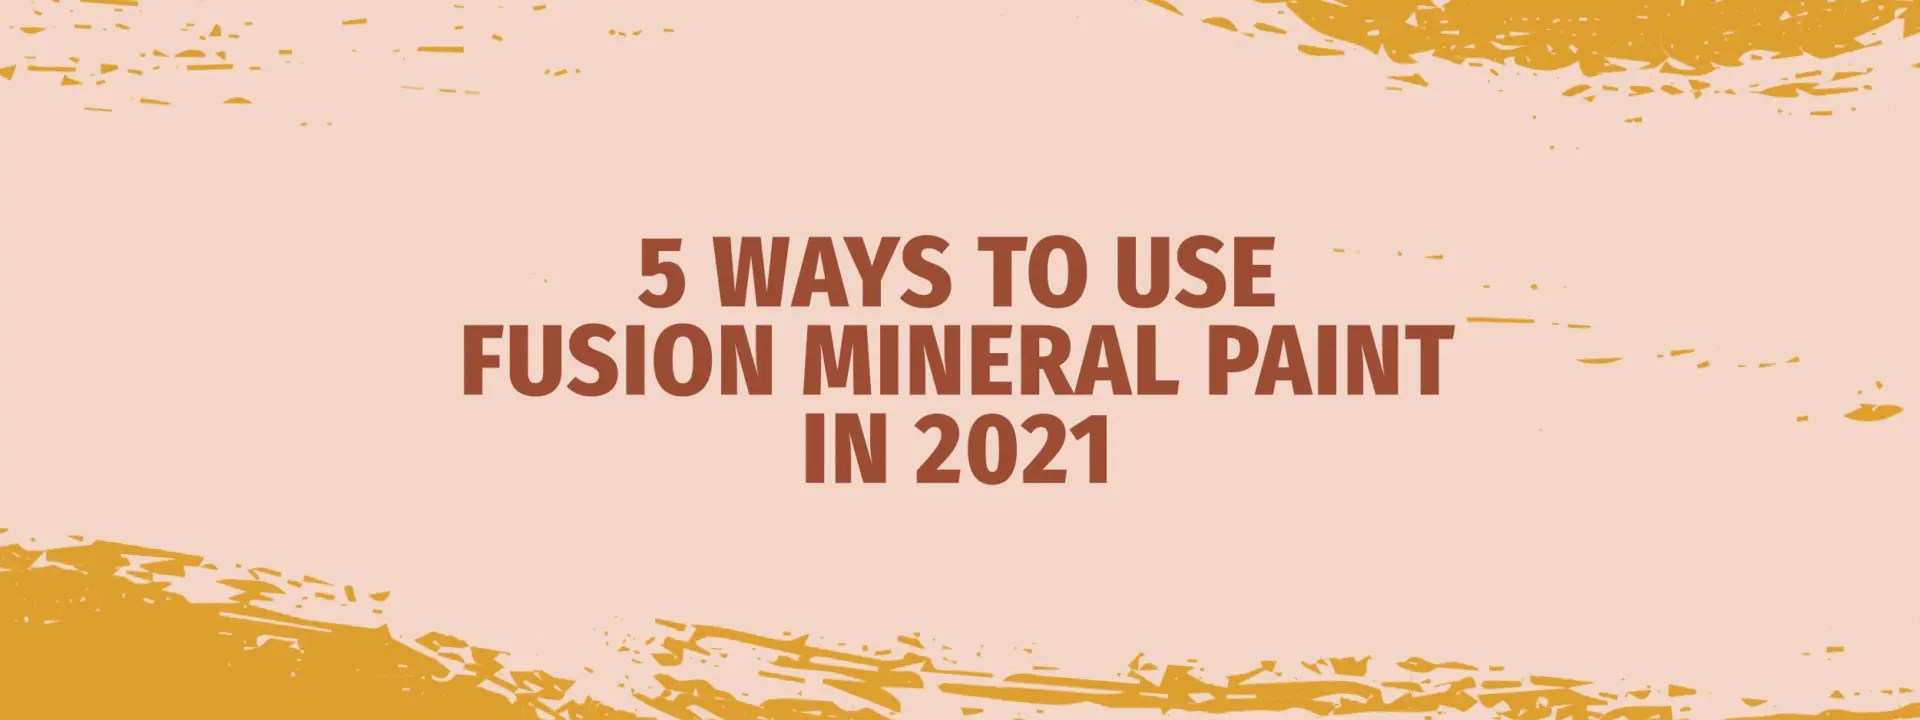 Fusion Mineral Paints for 2021